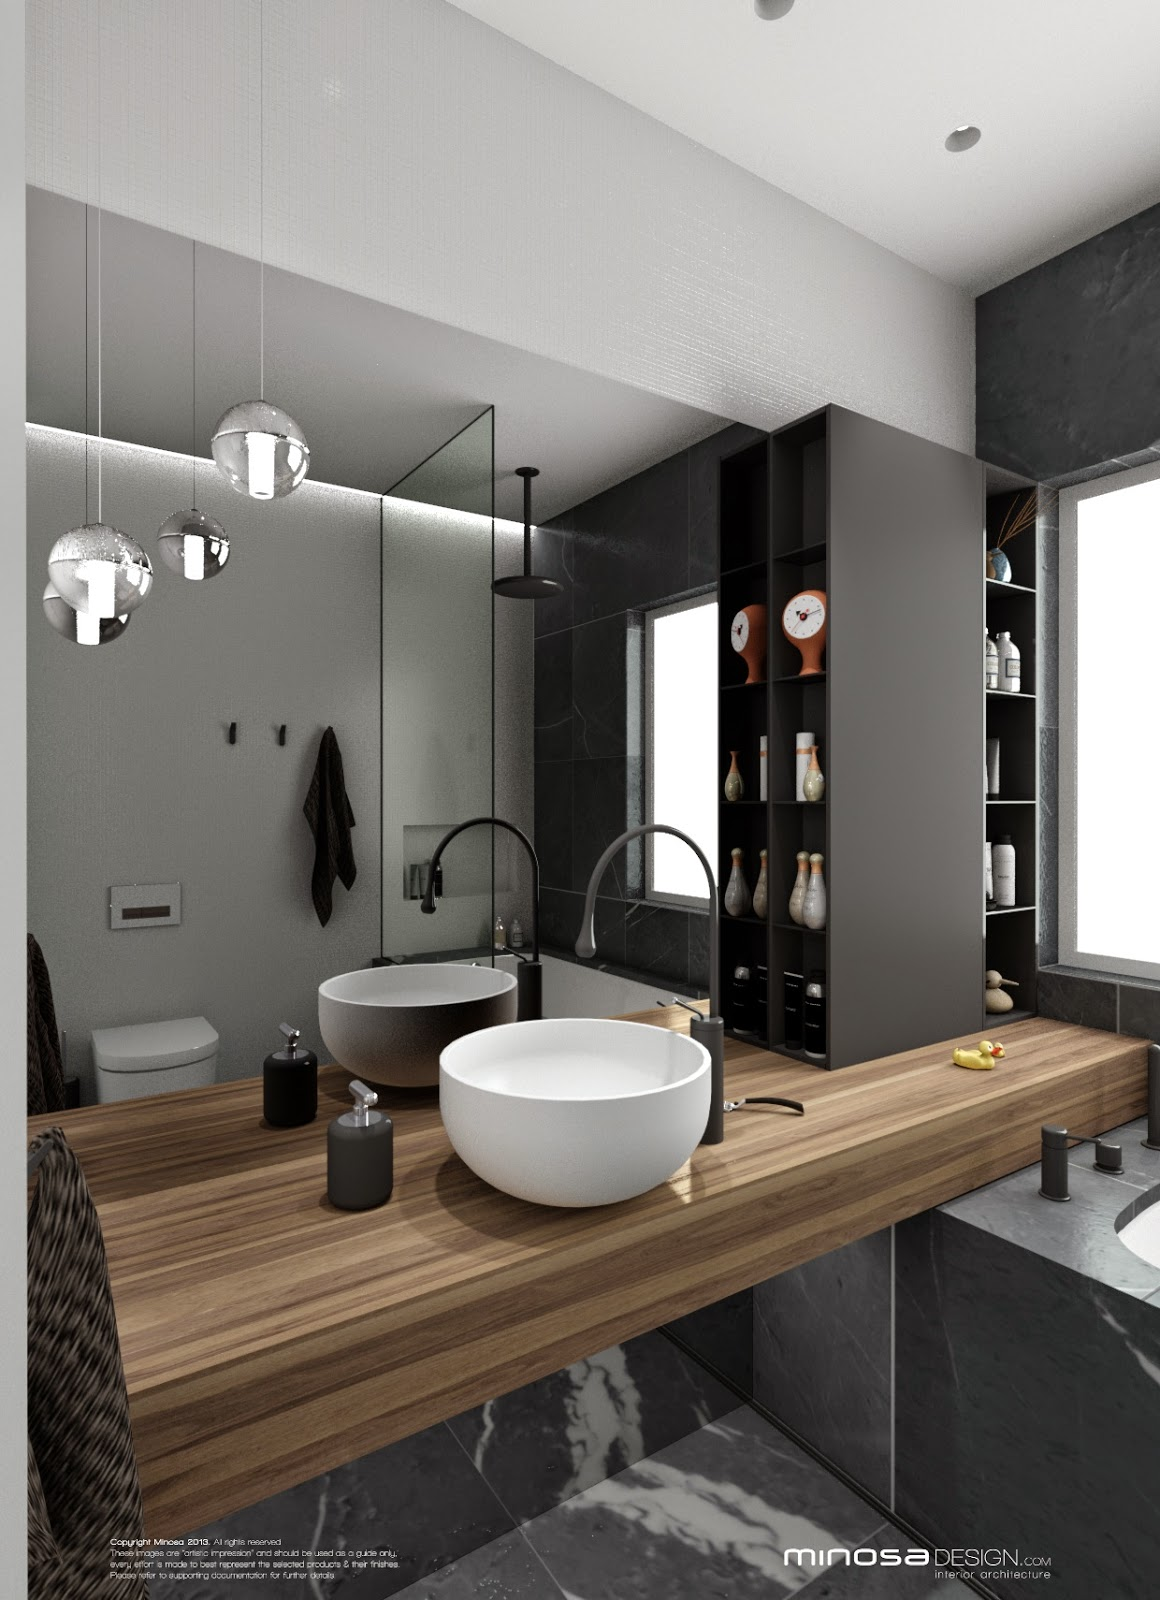 Minosa bathroom design small space feels large - Designer pictures of bathrooms ...